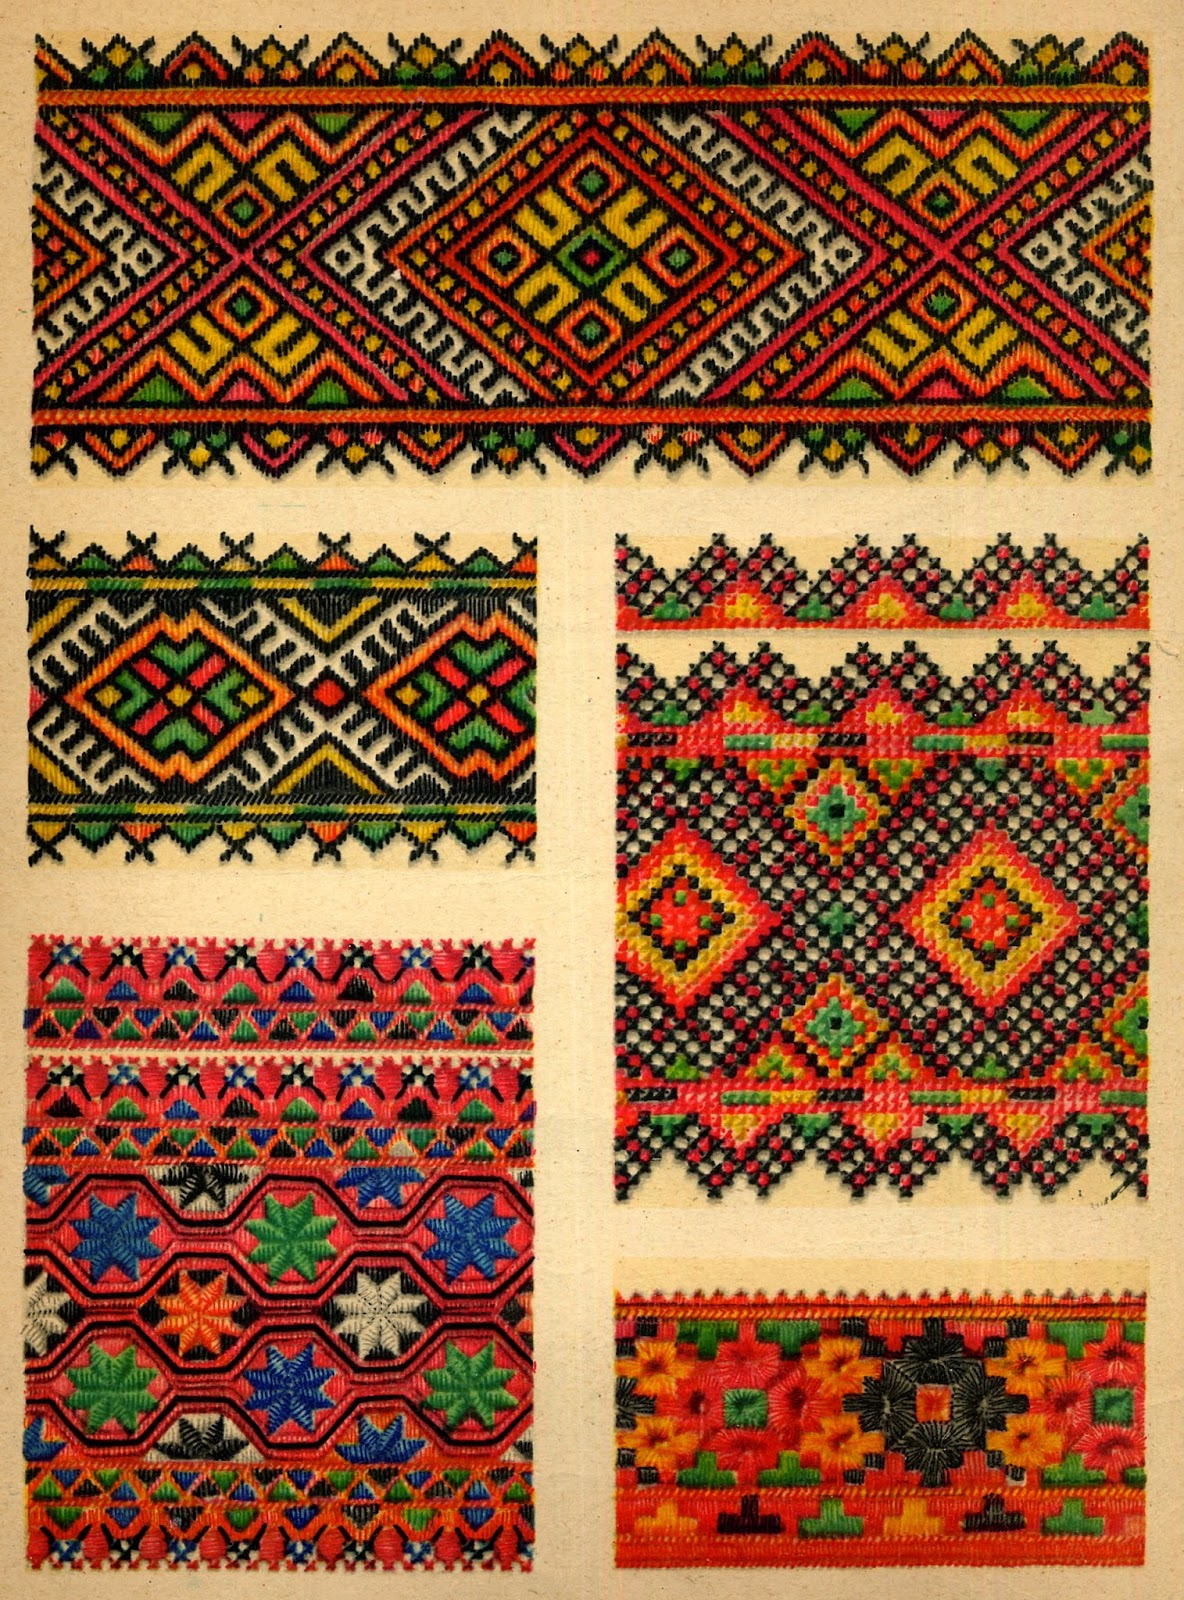 traditional embroidery Folk art is a longtime favorite among textile artisans wycinanki, polish folk art popular as paper cuttings, has been reproduced into beautiful machine embroidery even centuries later, its bright colors and whimsical depictions make the designs popular as ever photos via embroidery library folk.